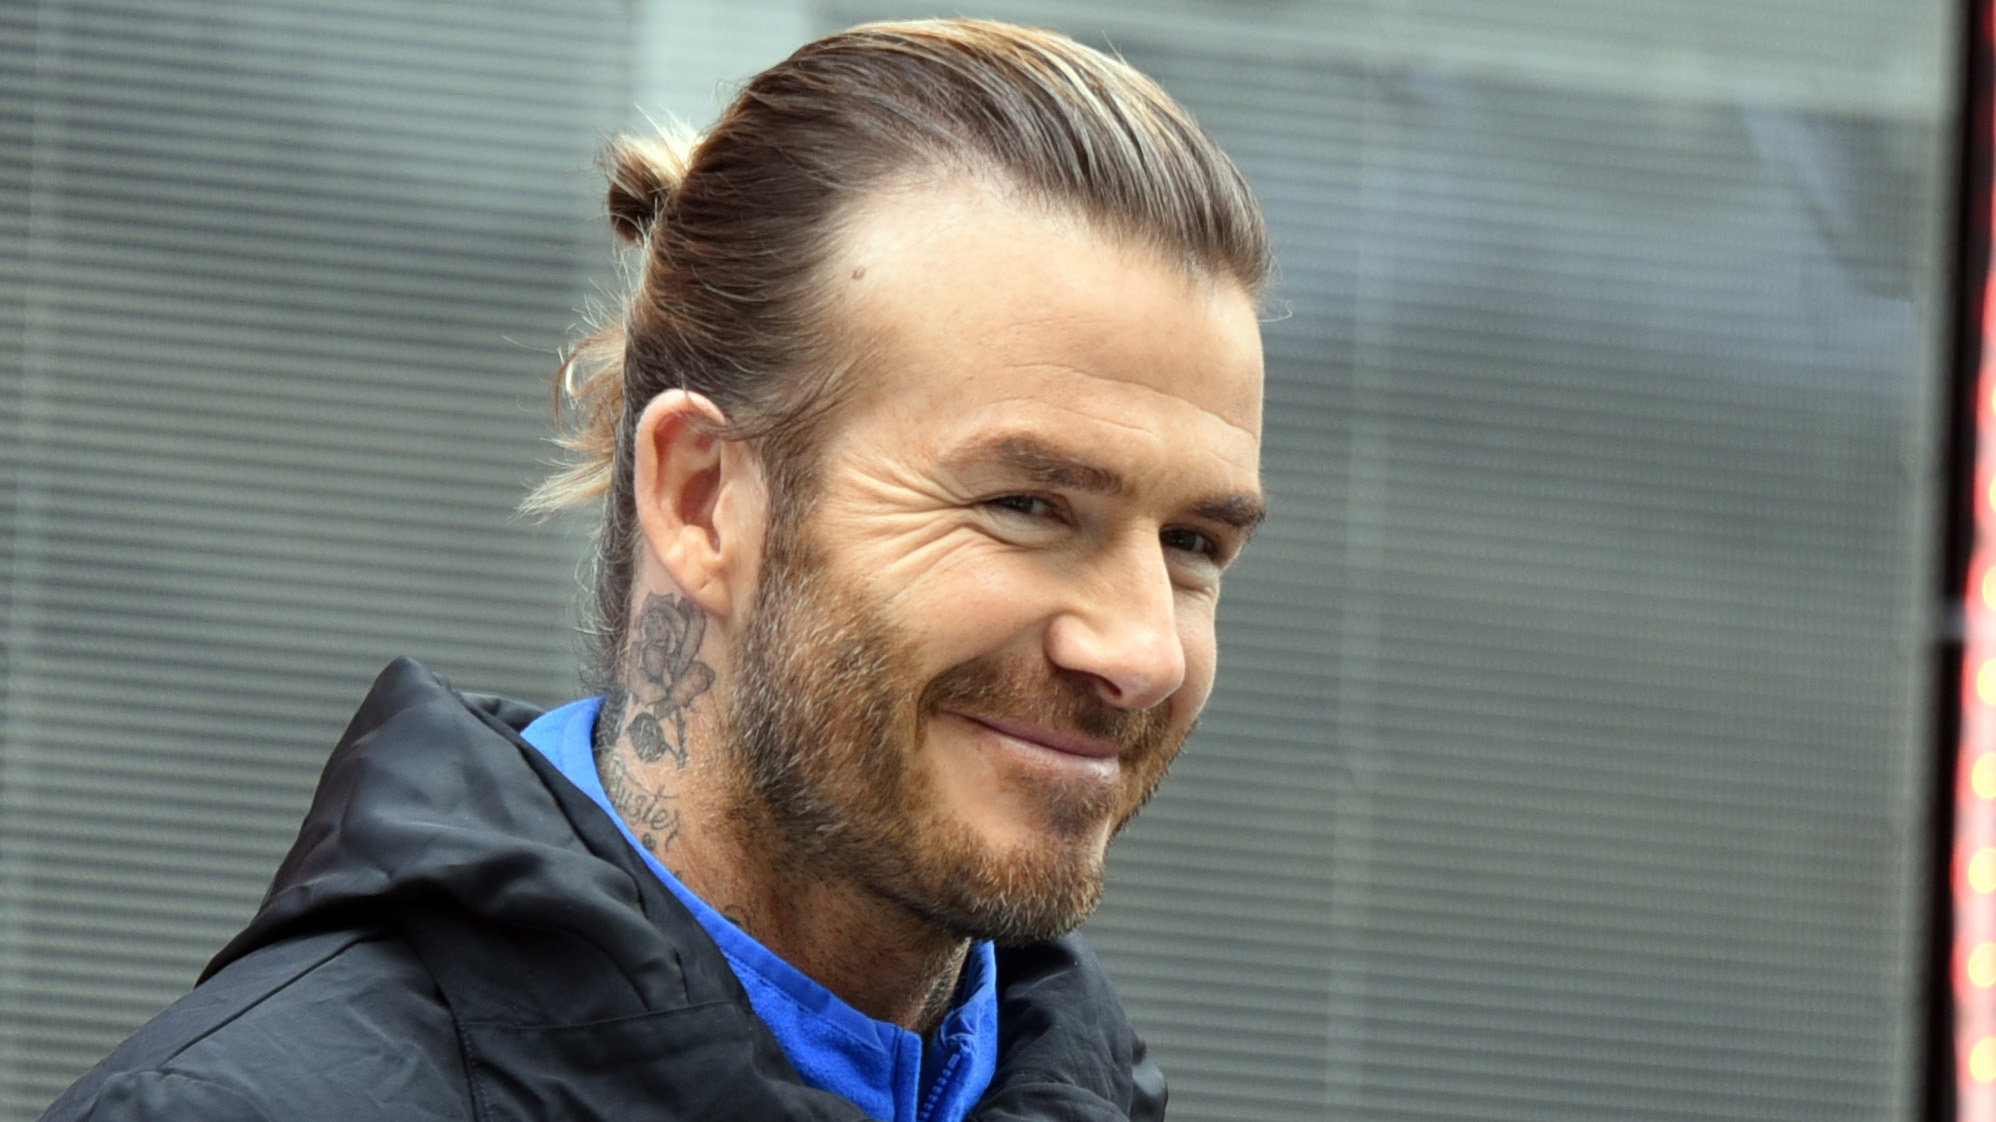 David beckham gallery wallpaper and free download - David beckham ...